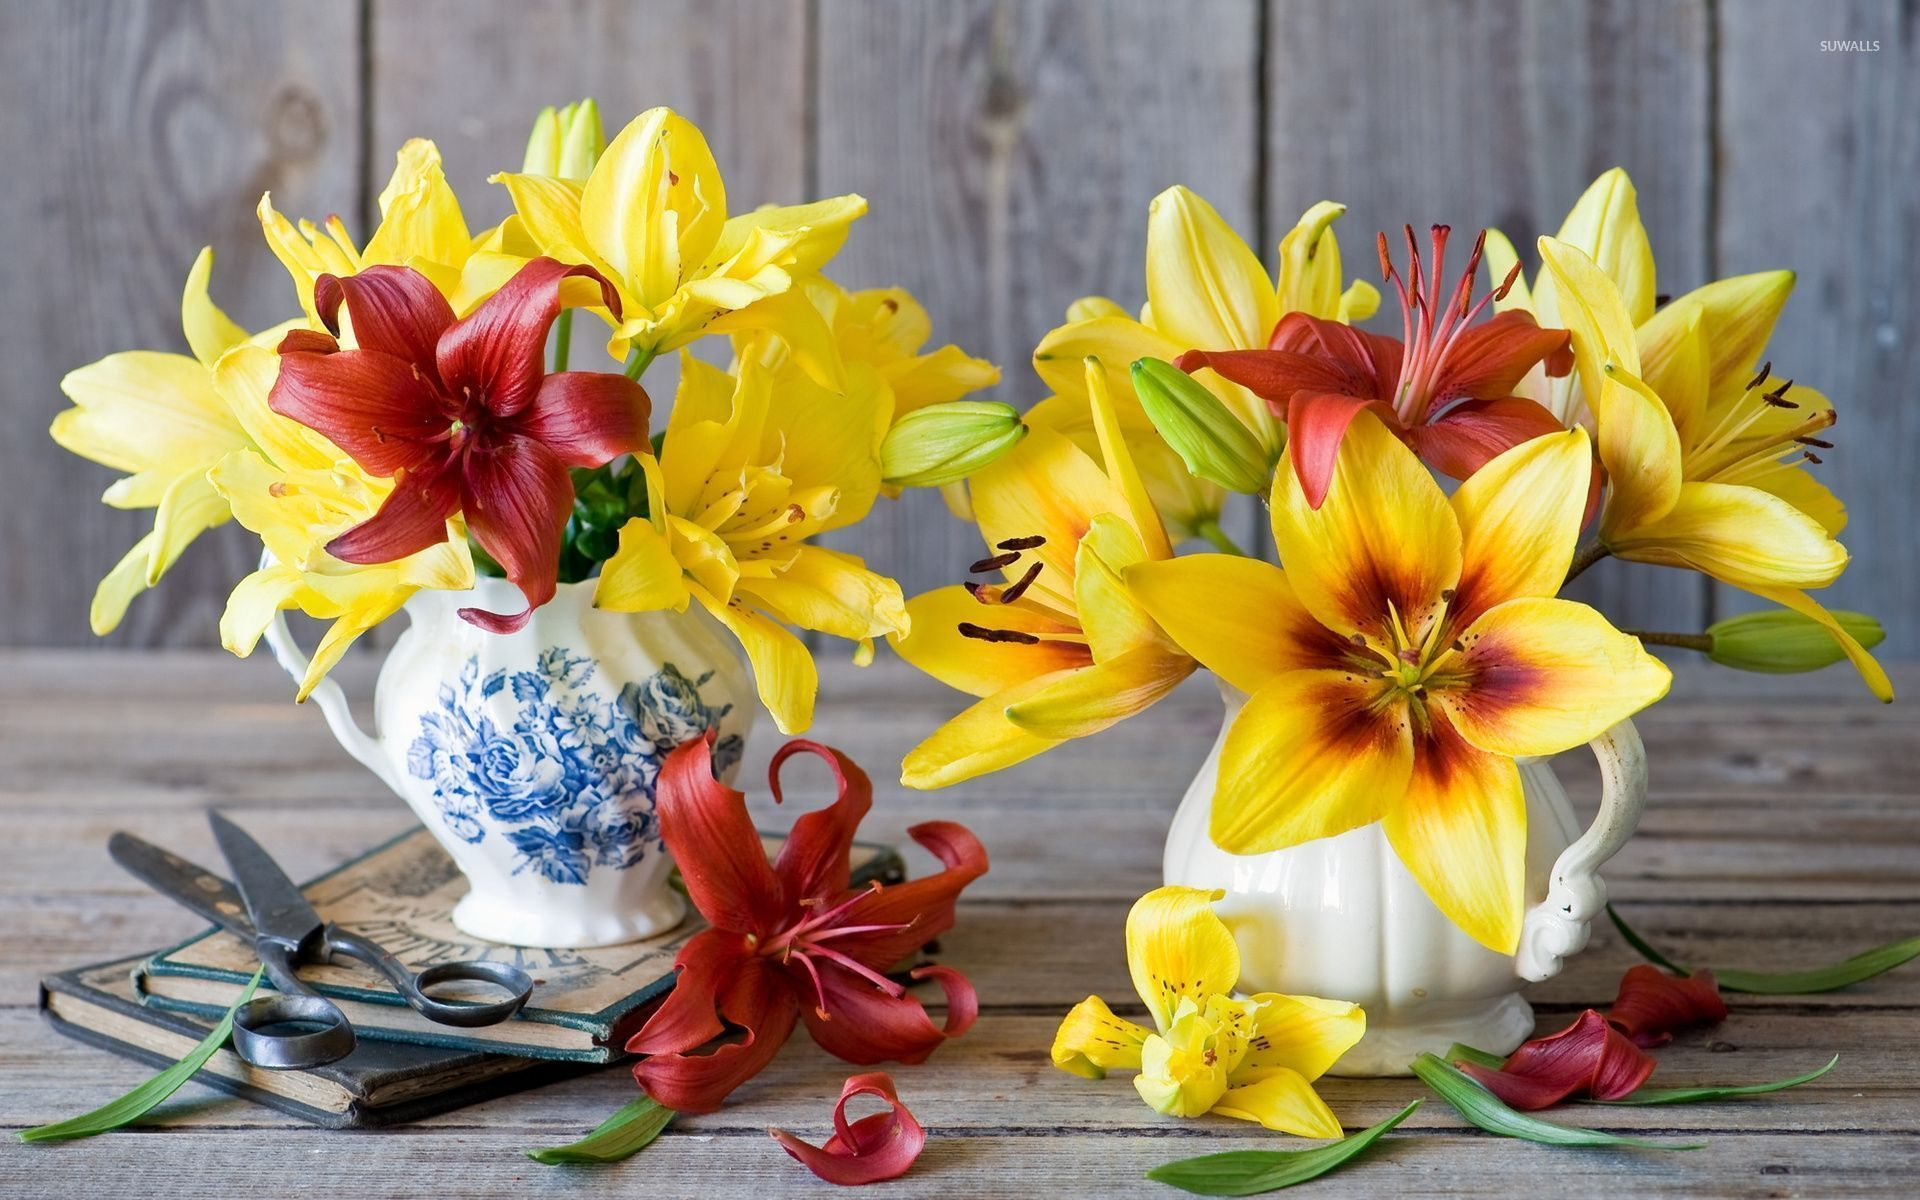 Red And Yellows Lilies 52536 1920×1200 Wallpaper